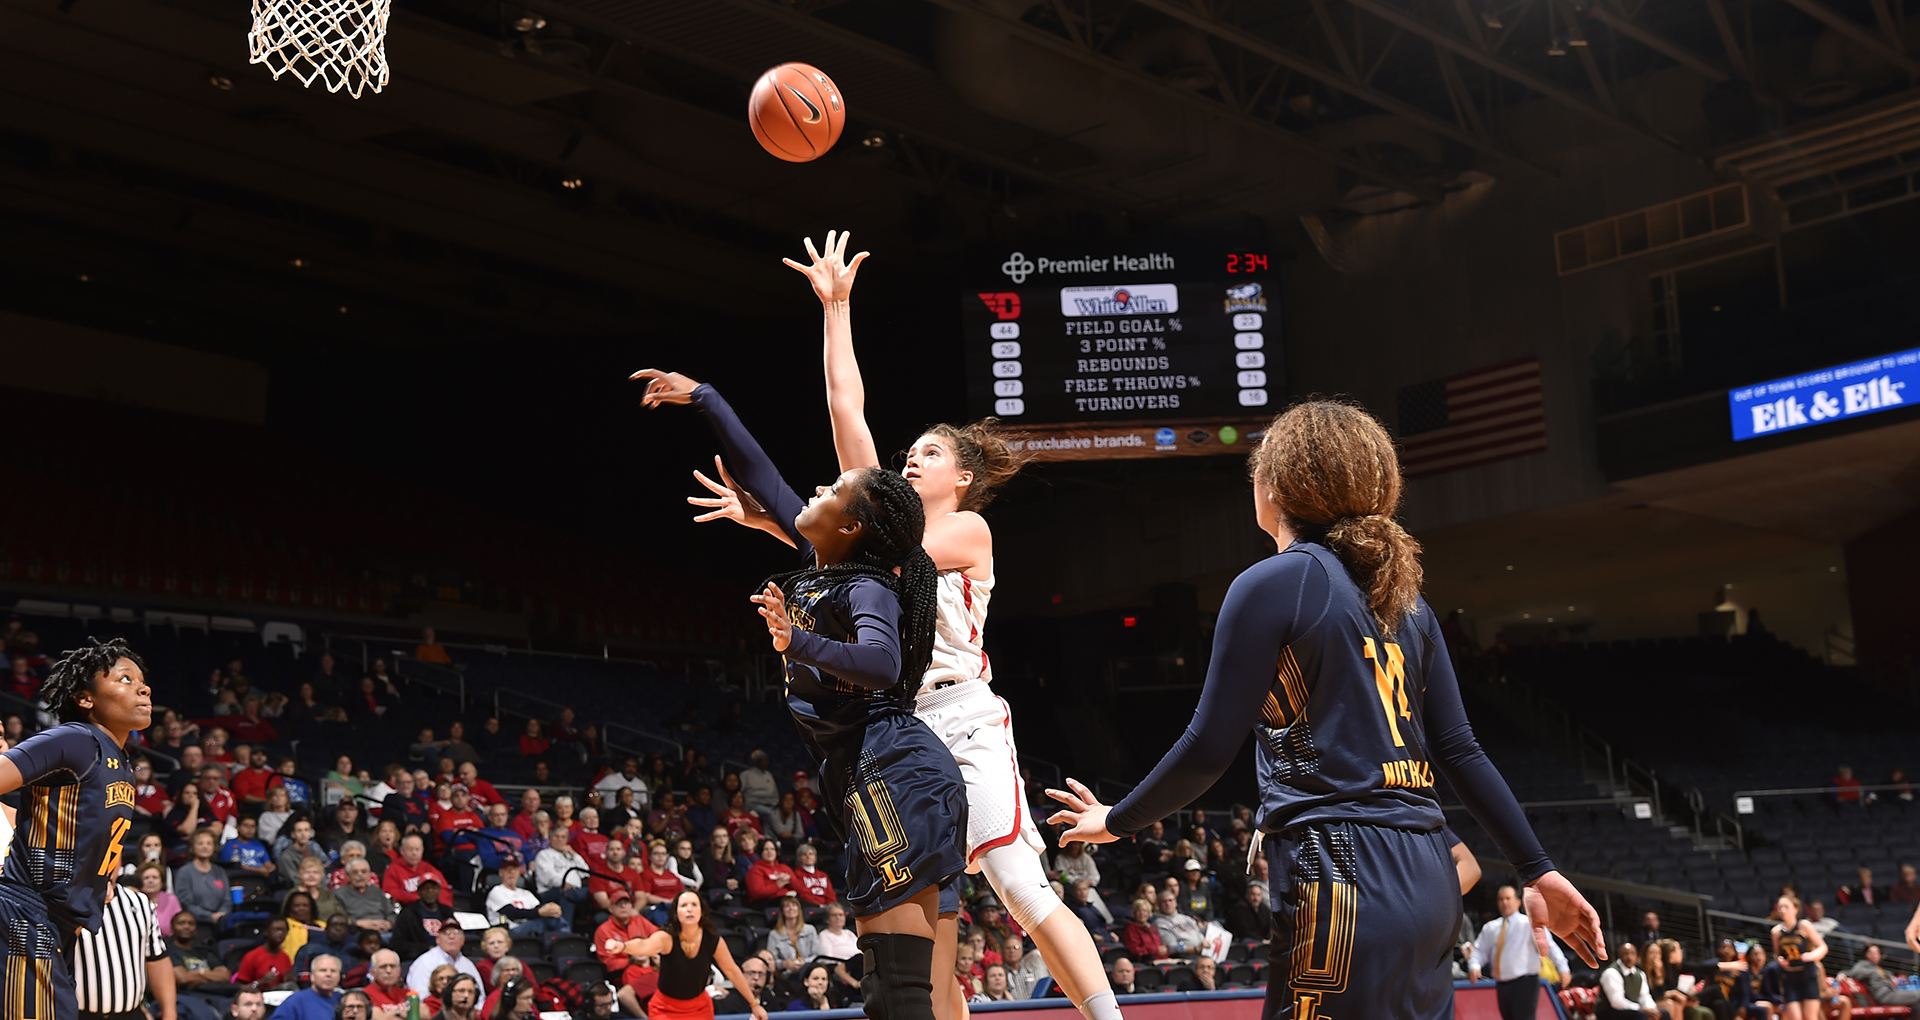 7a73e2505db UDWBB Hosts La Salle Tuesday In A-10 First Round - University of ...